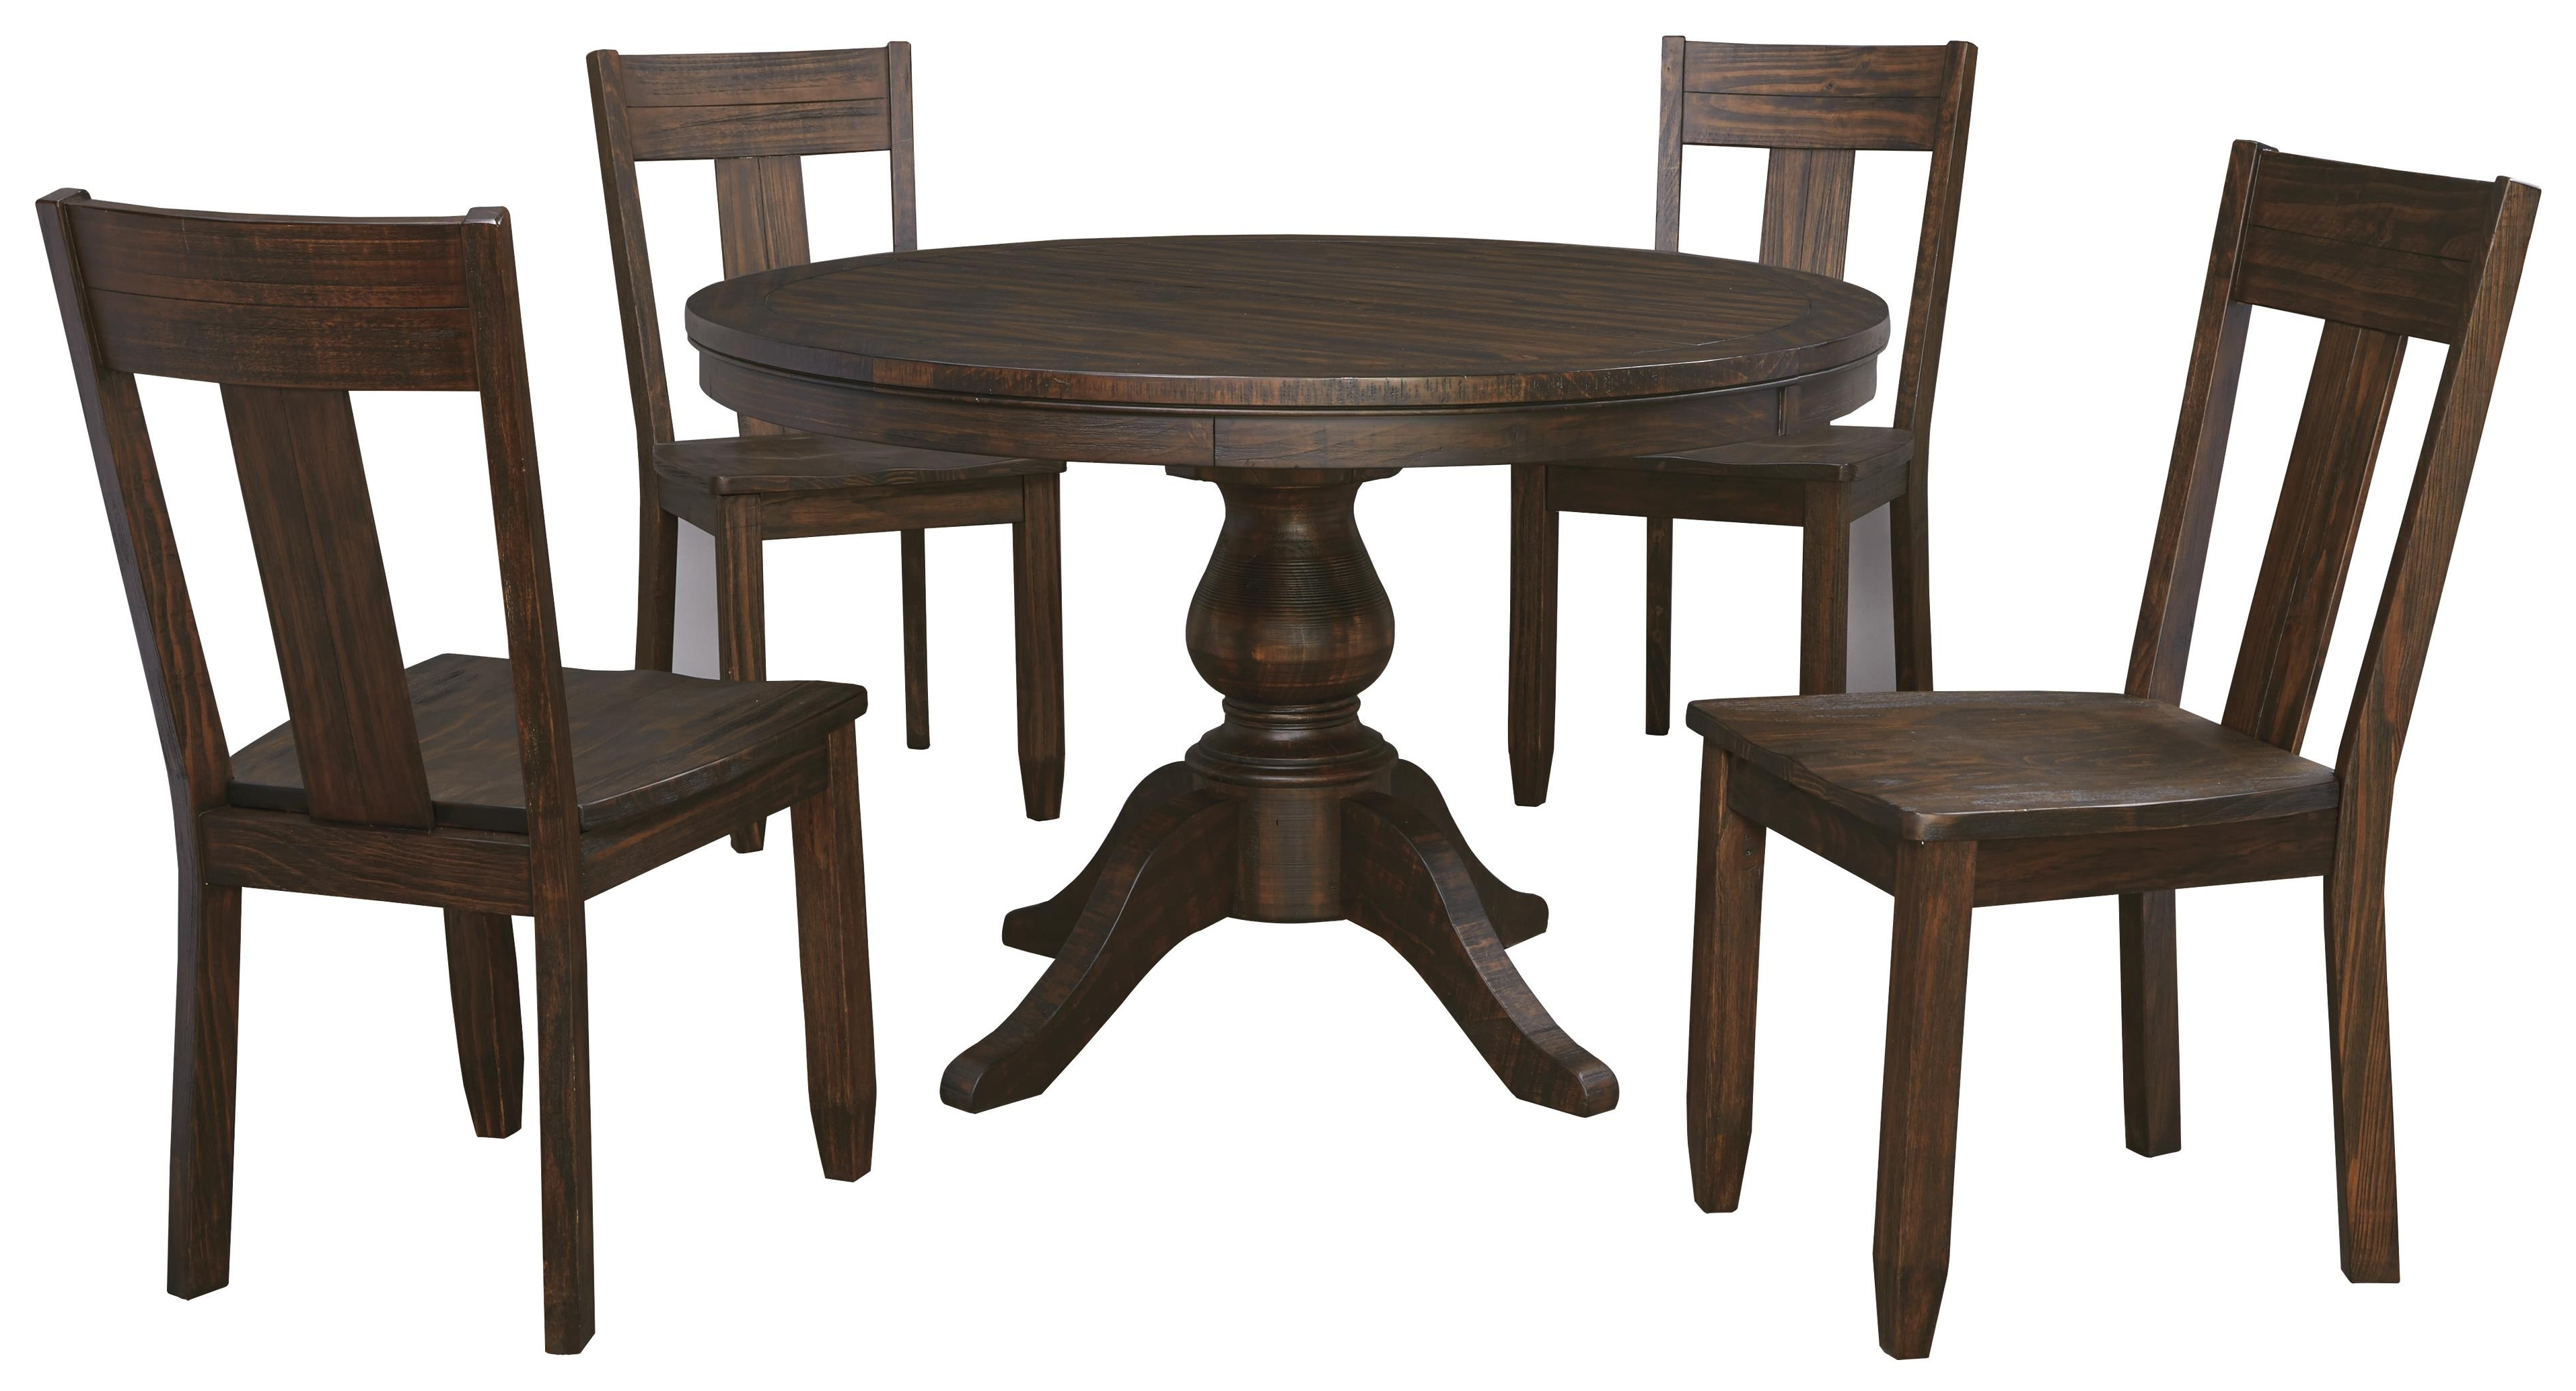 Macie Round Dining Tables Intended For Recent 5 Piece Round Dining Table Set – Castrophotos (View 19 of 25)